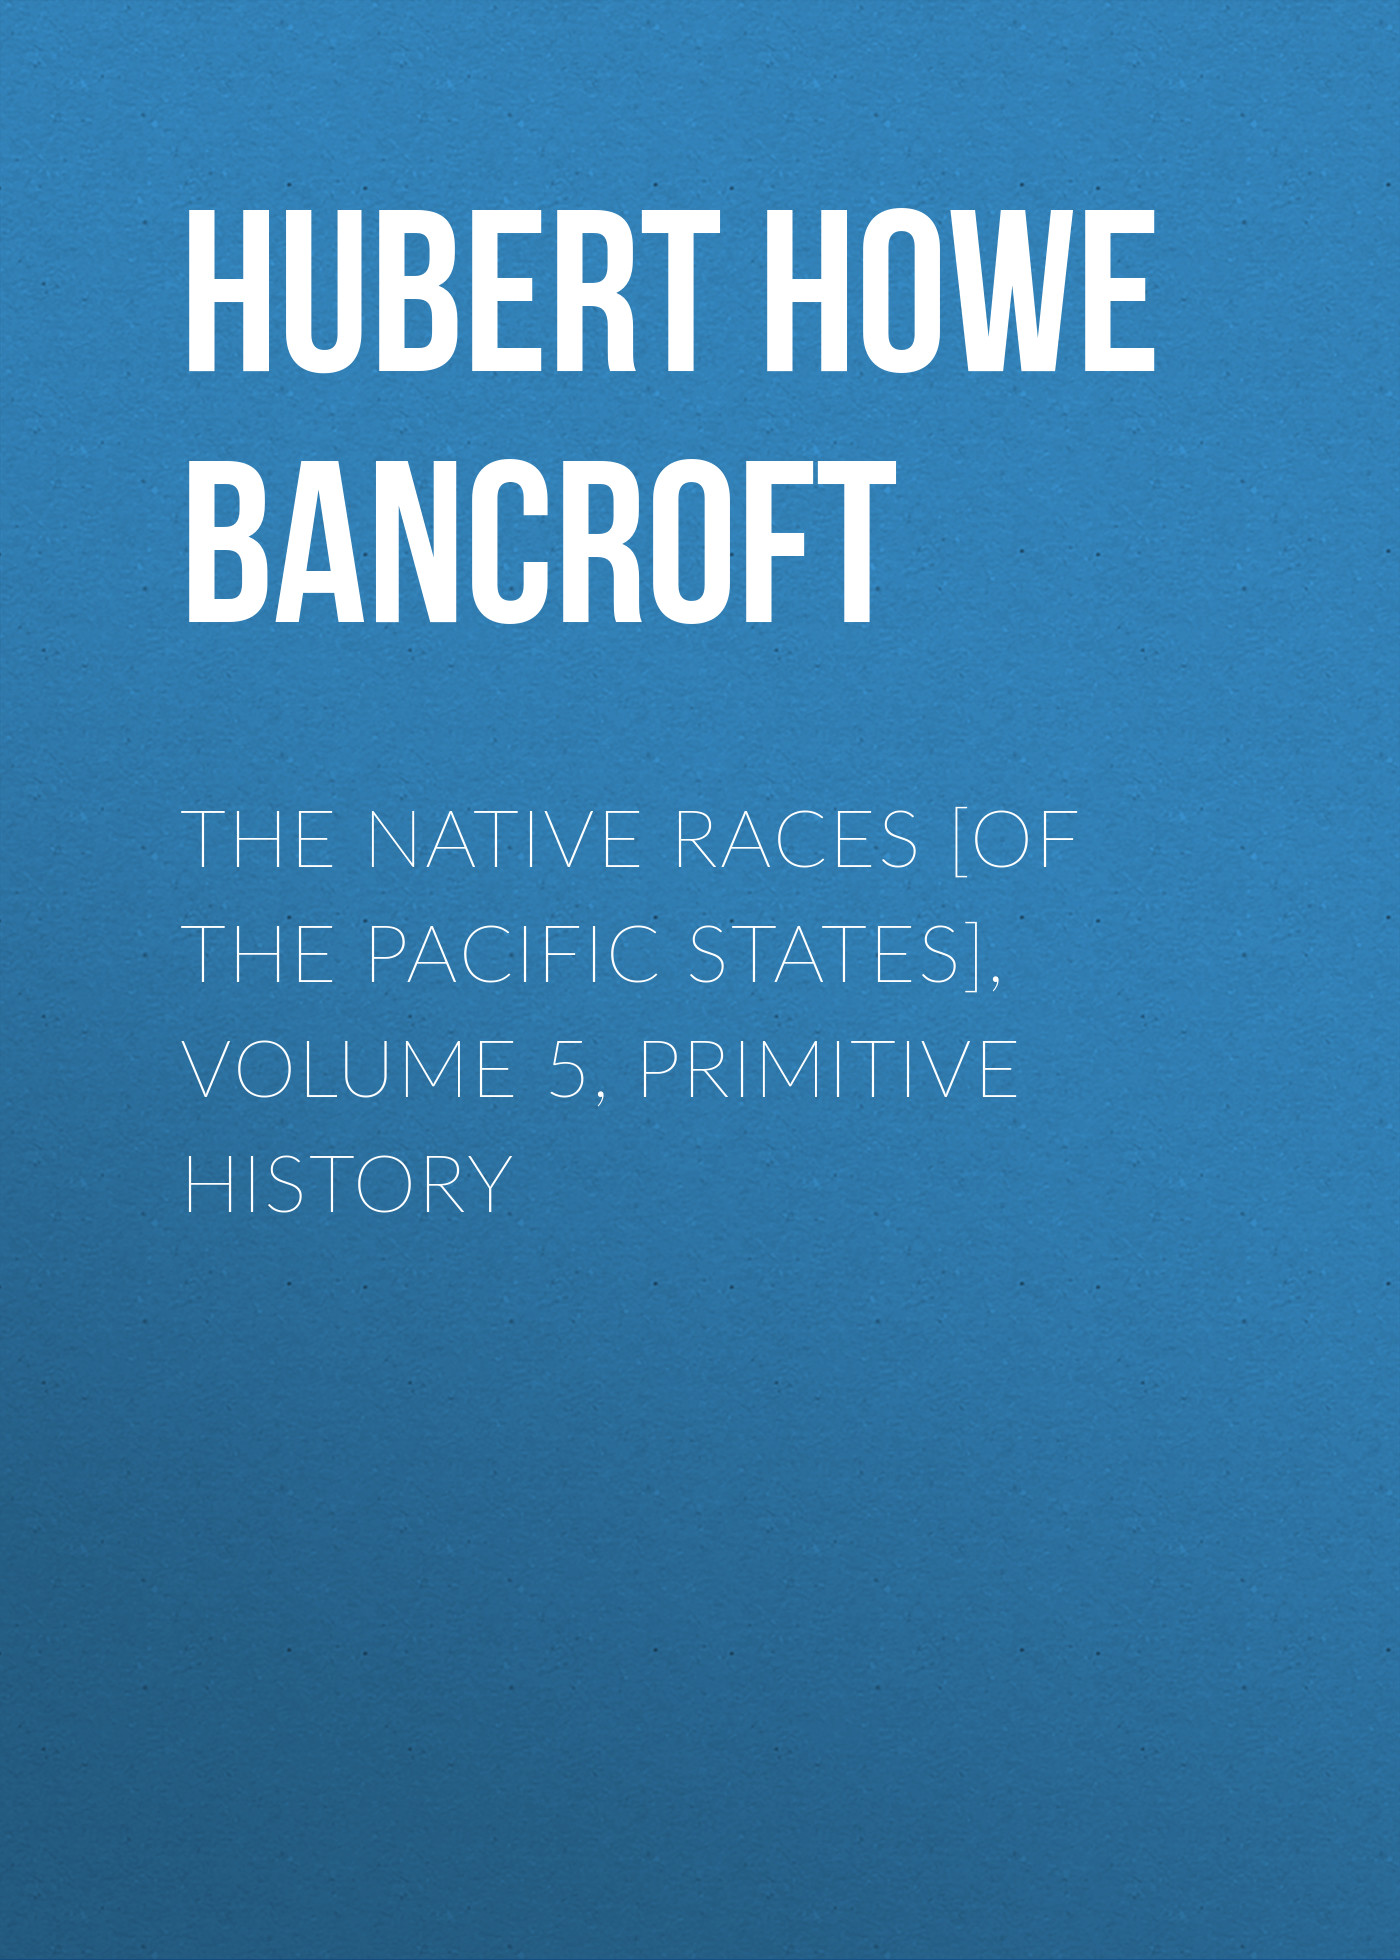 Hubert Howe Bancroft The Native Races [of the Pacific states], Volume 5, Primitive History bancroft hubert howe the works of hubert howe bancroft volume 20 page 5 page 5 page 9